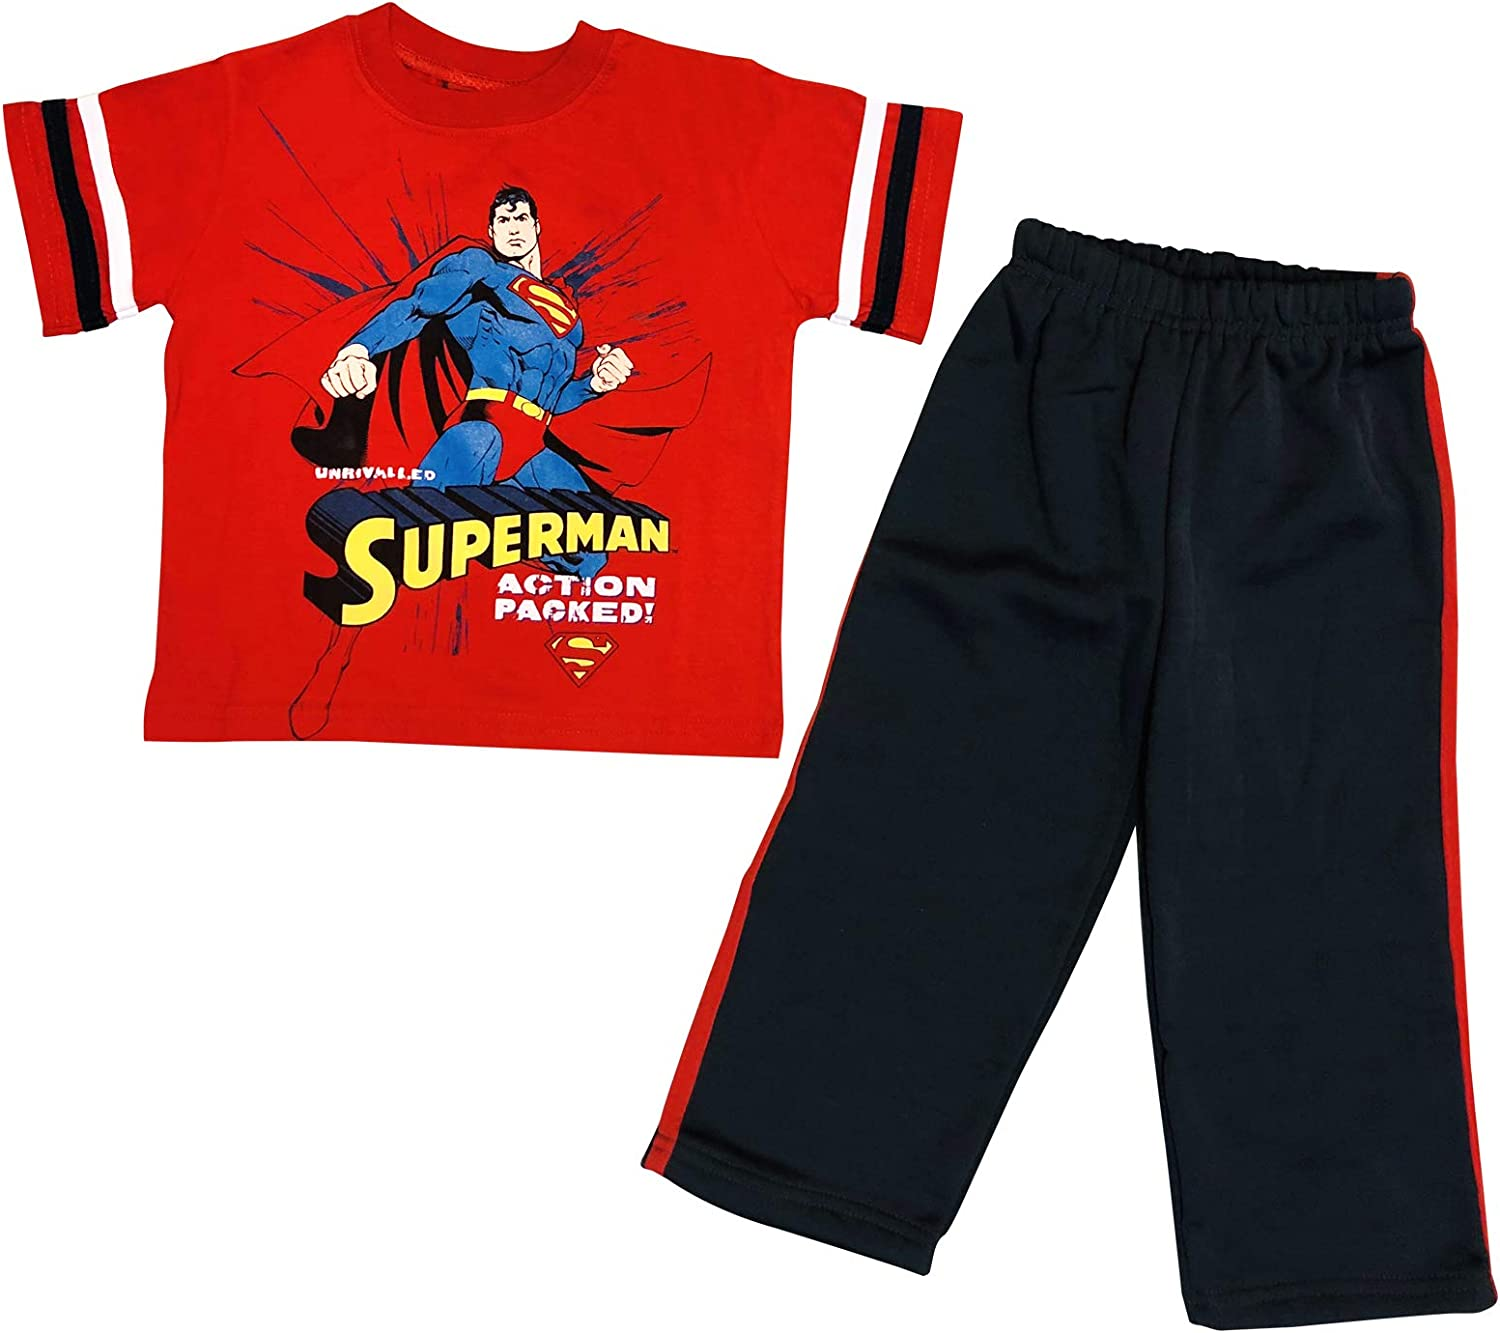 SUPERMAN Action Packed 2 Piece Set TOP Short Sleeve with Fleece Sweatpants